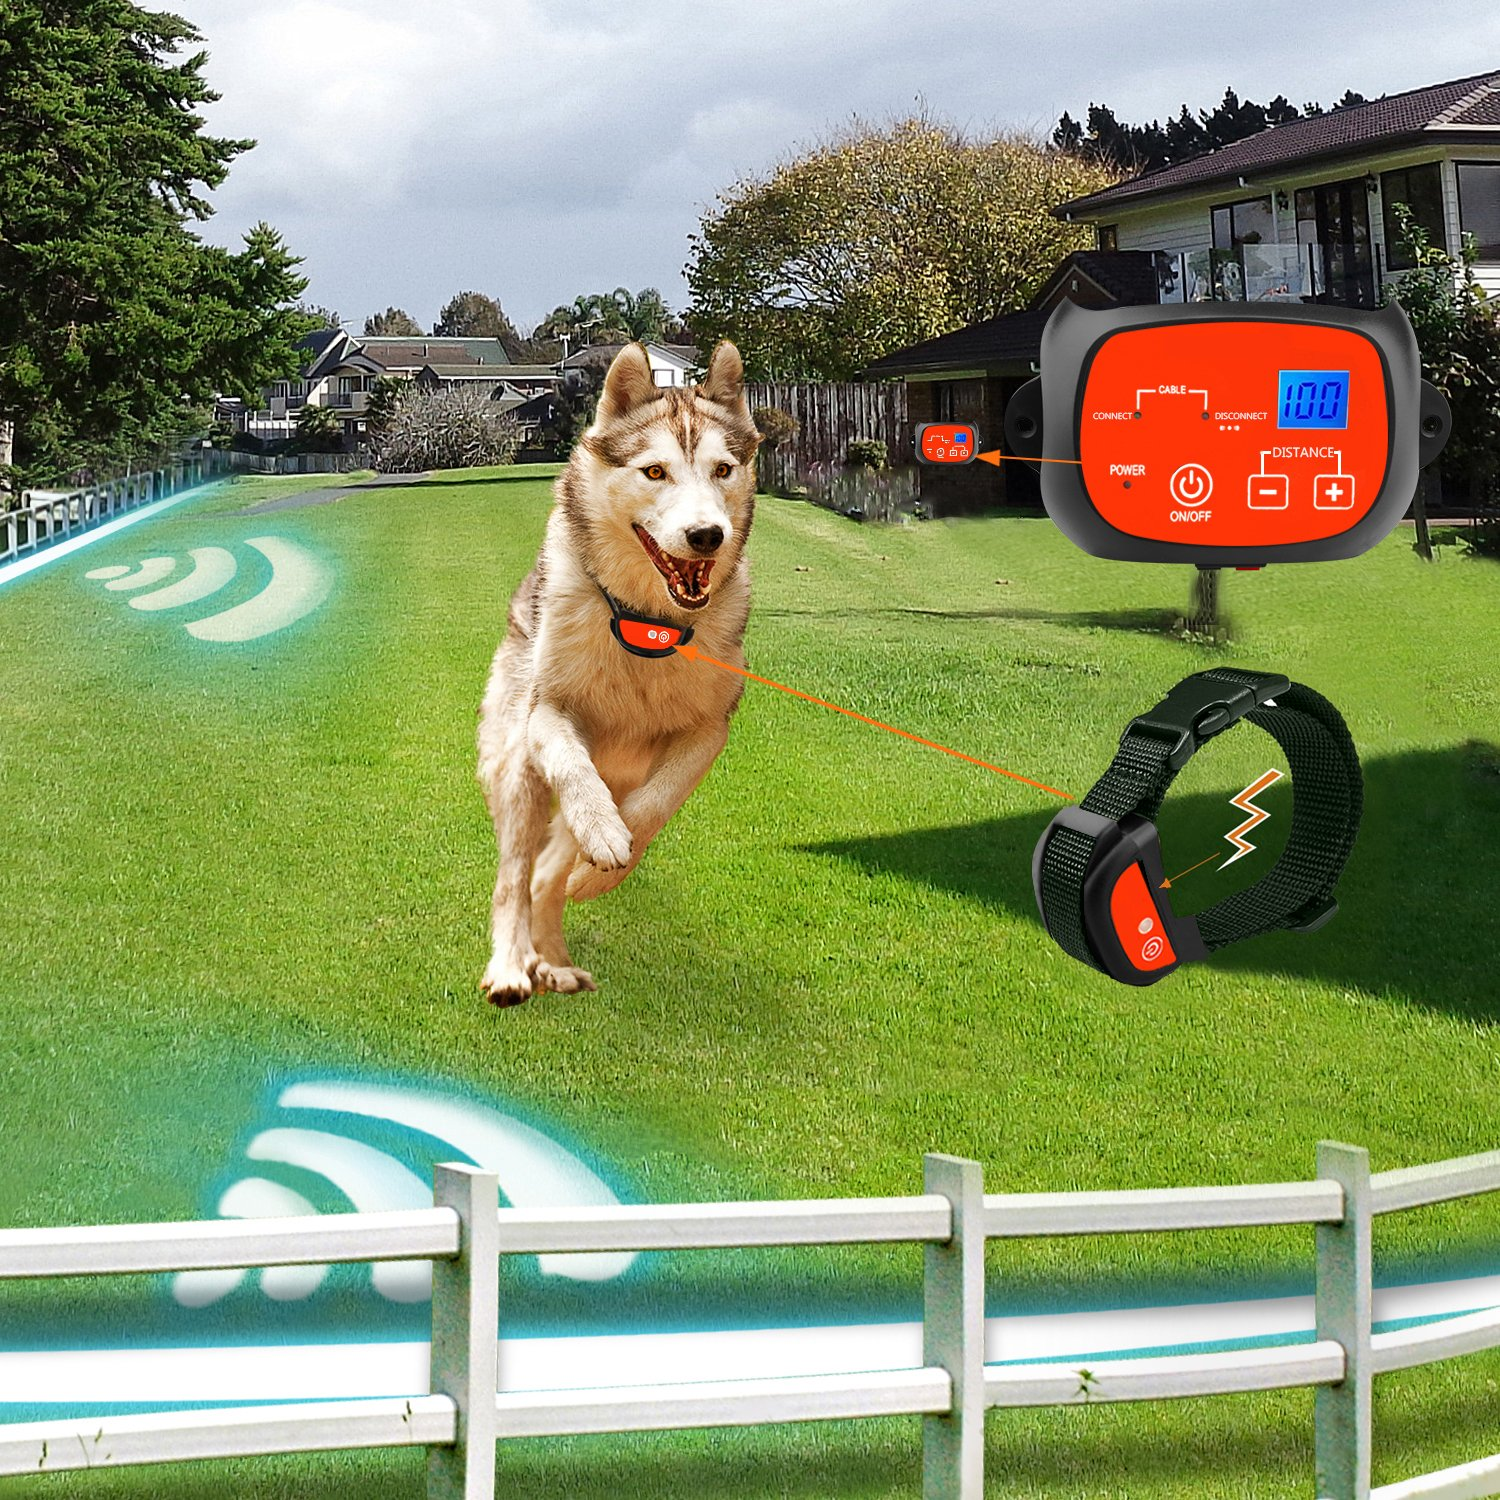 2 Dog Electric Fence with Rechargeable & Rainproof Collar, Hidden Dog Containment System with Wire-DTY2